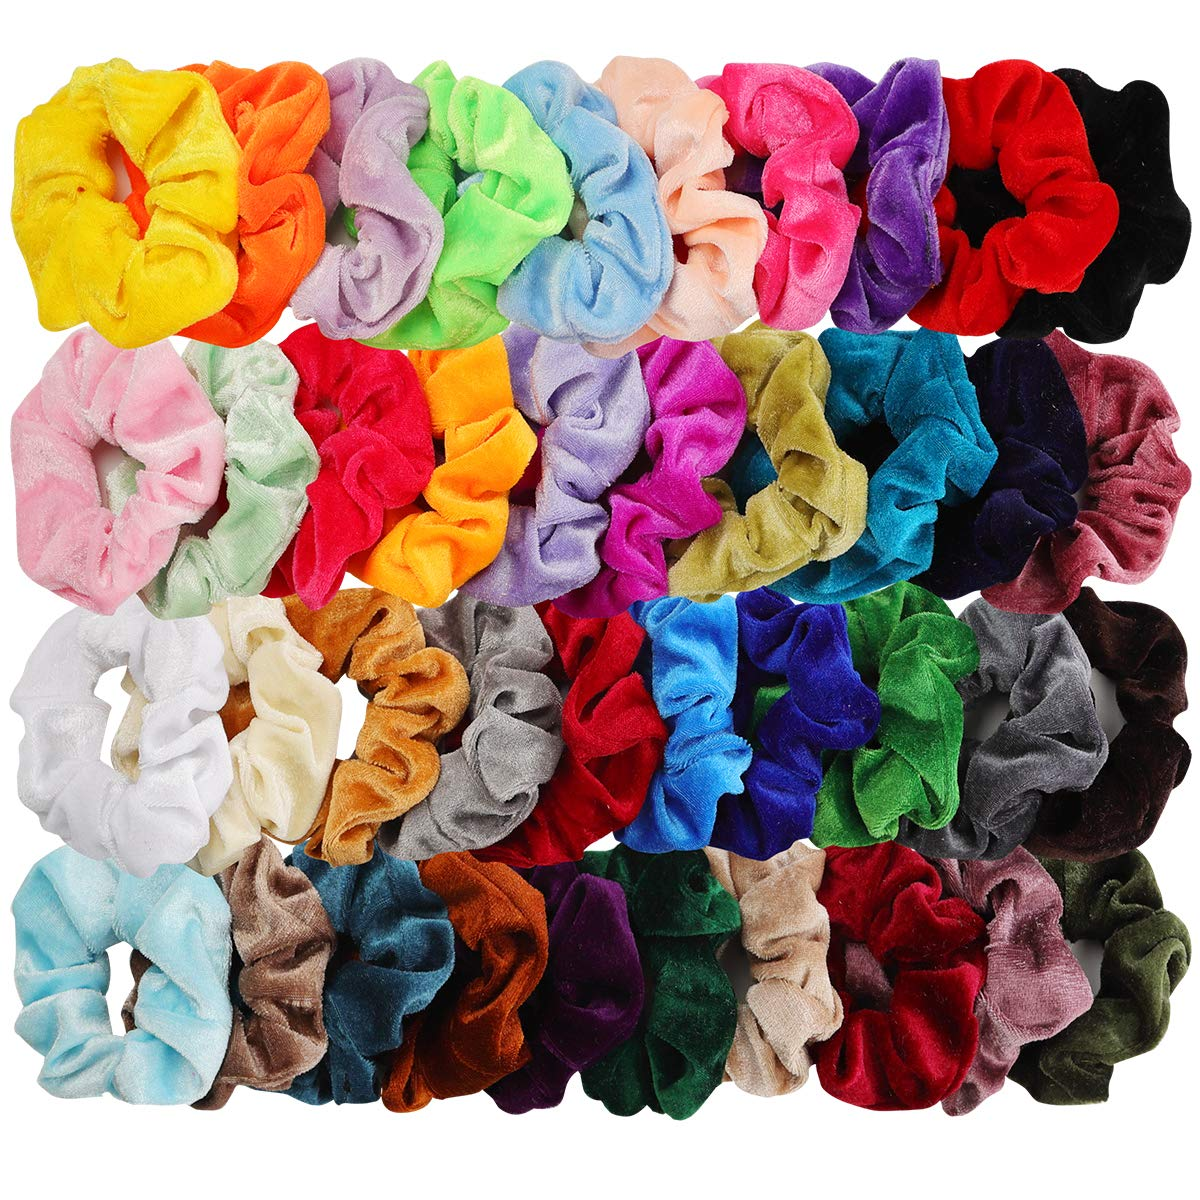 40pcs Hair Scrunchies Velvet Elastic Hair Bands Scrunchy Hair Ties Ropes 40 Pack Scrunchies for Women or Girls Hair Accessories for Thanksgiving Christmas, 40 Assorted Colors Scrunchies